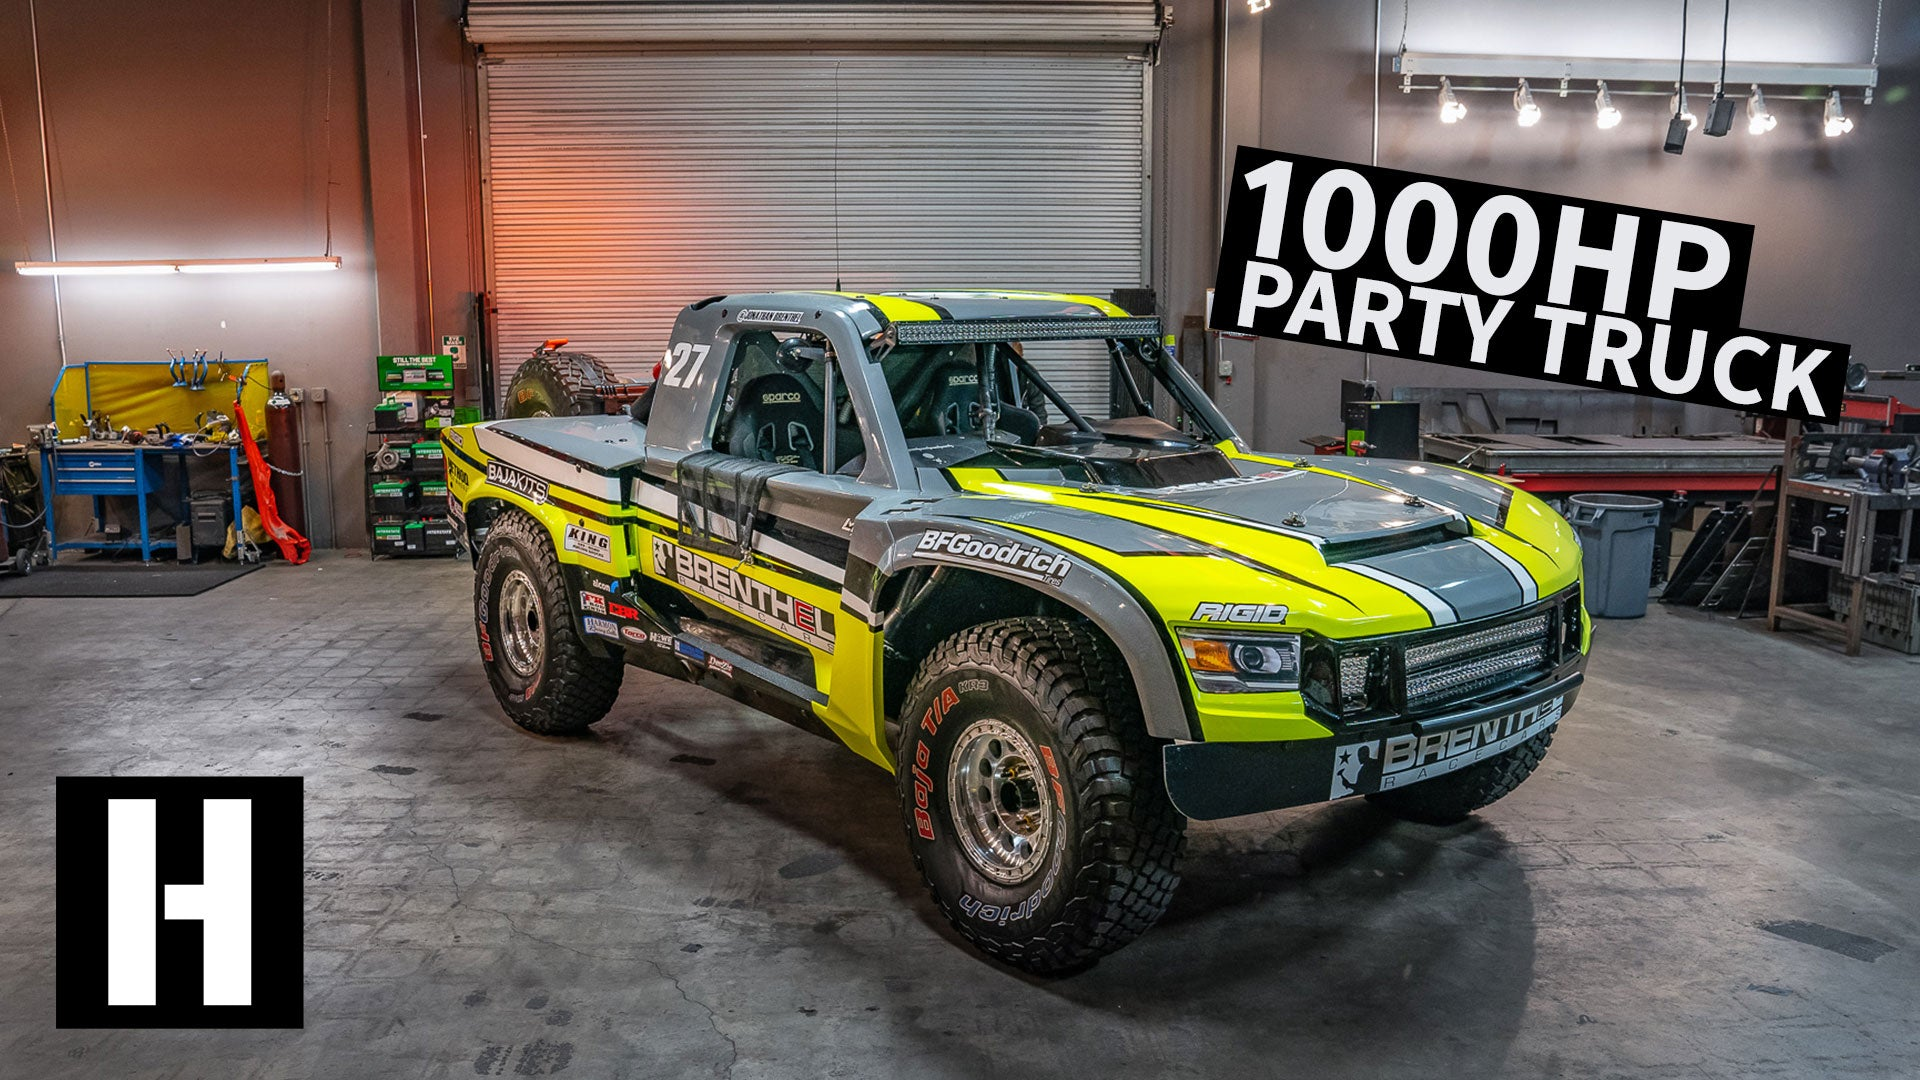 Ultimate Squarebody Street Truck? 600+ hp Supercharged LS '86